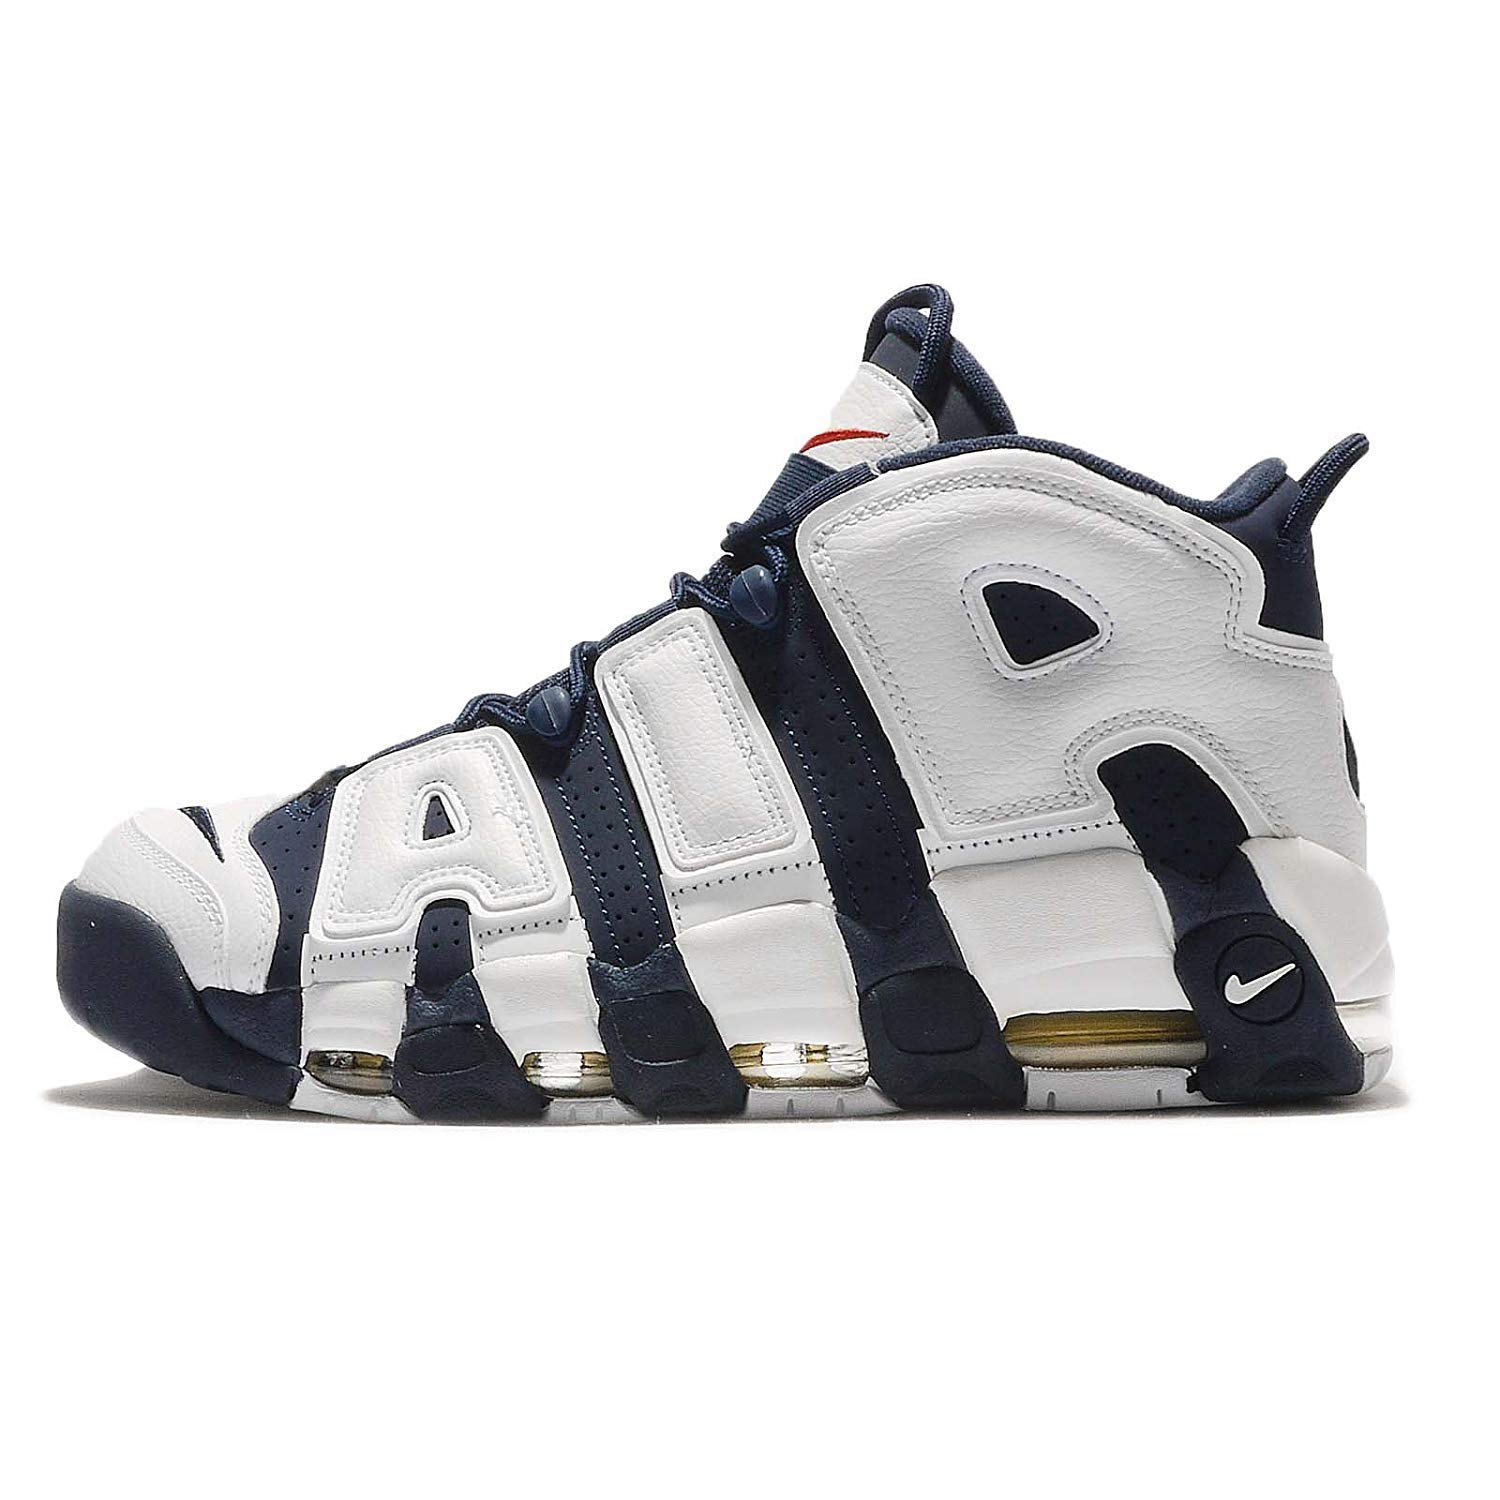 NIKE - ナイキ - AIR MORE UPTEMPO 'OLYMPIC 2016 RELEASE' - 414962-104 (メンズ) B01IS0TE2I  10 D(M) US